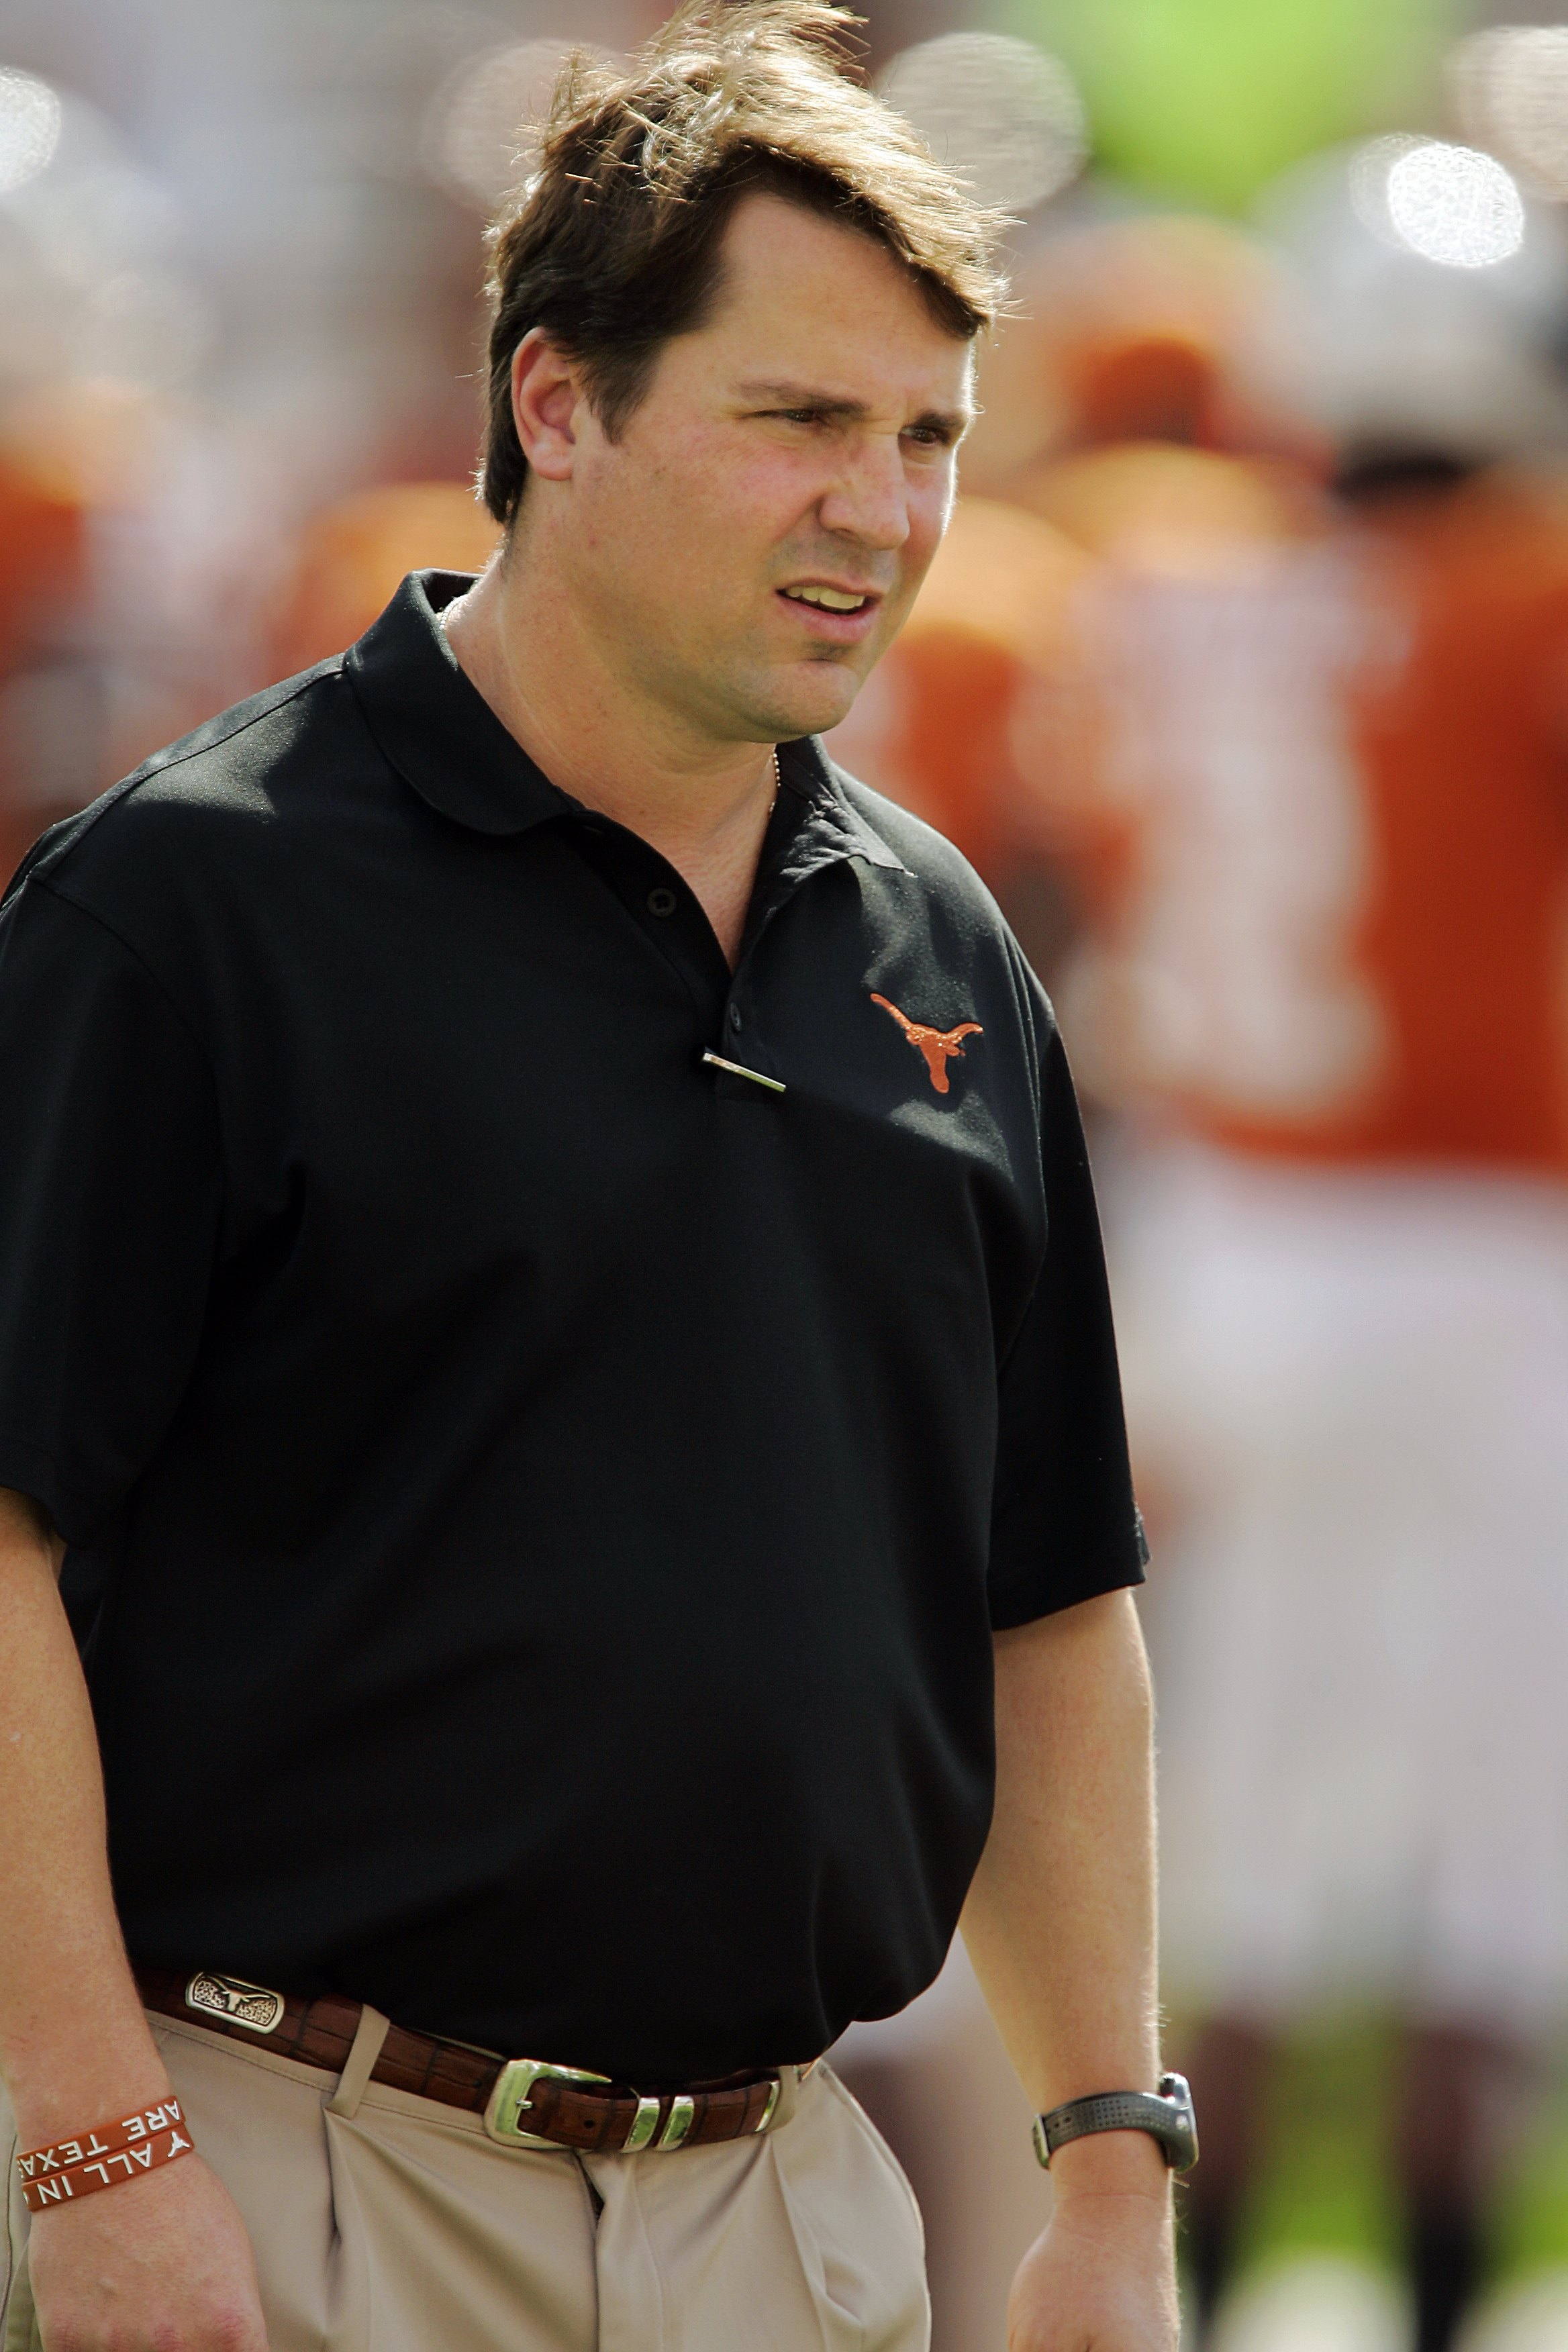 AUSTIN, TX - NOVEMBER 07:  Defensive coordinator Will Muschamp of the Texas Longhorns watches the defense prepare against the UCF Knights on November 7, 2009 at Darrell K Royal - Texas Memorial Stadium in Austin, Texas.  Texas won 35-3.  (Photo by Brian B